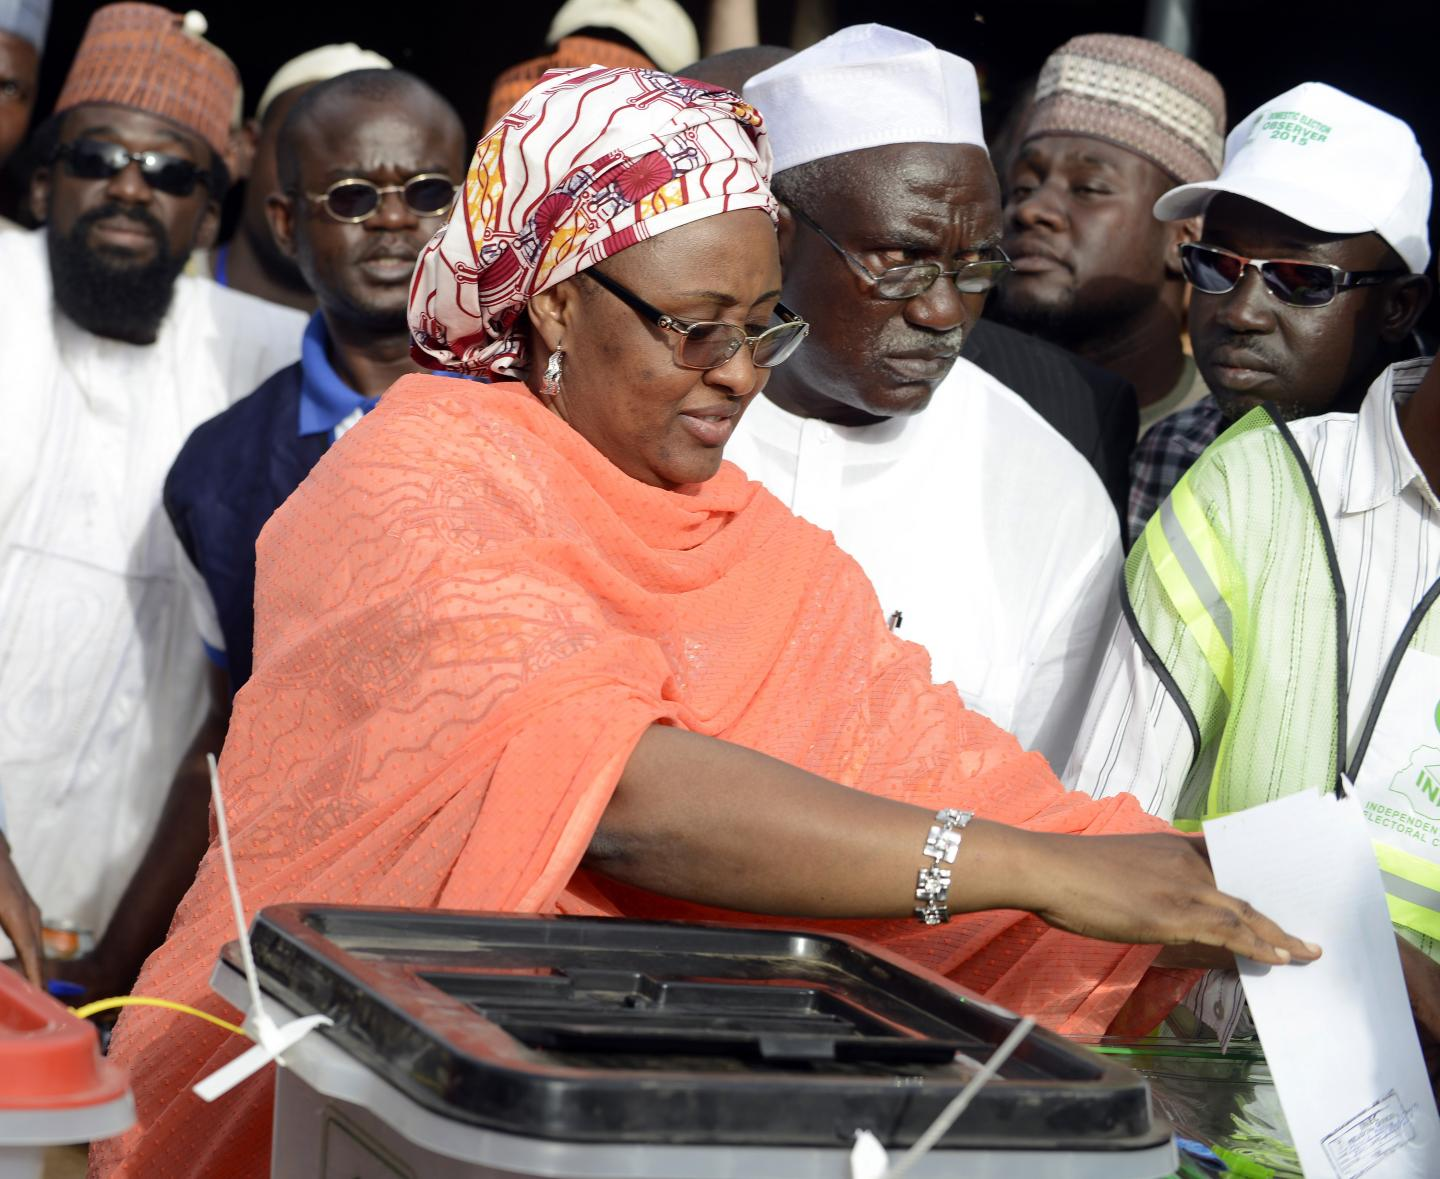 Aisha Buhari casts her ballot at a polling station in Daura, Katsina State in northern Nigeria, March 28, 2015, in an election won by her husband Muhammadu Buhari. The First Lady has been accused of corruption by an opposition governor and is reportedly taking legal action